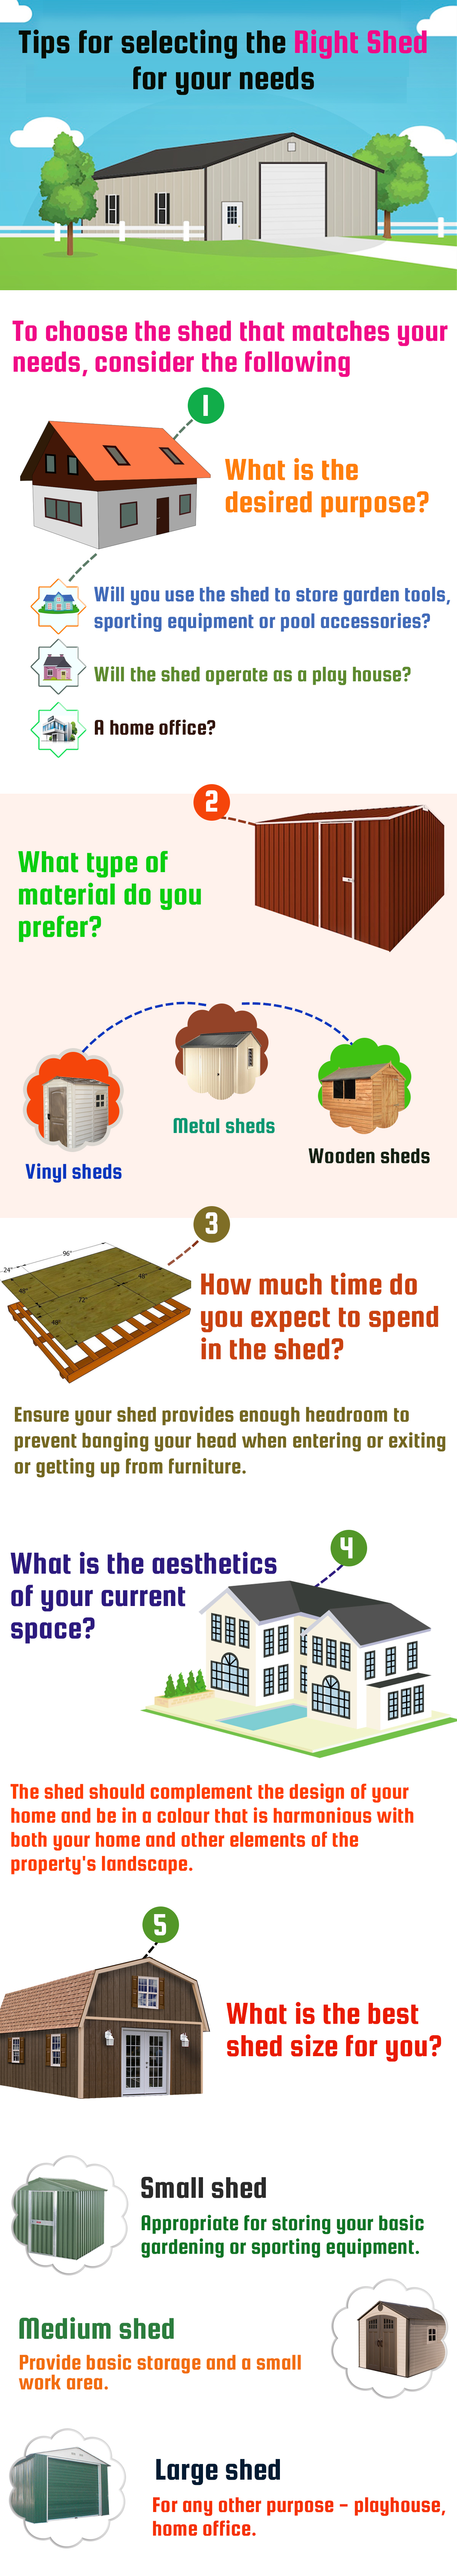 Tips for selecting the right shed for your needs